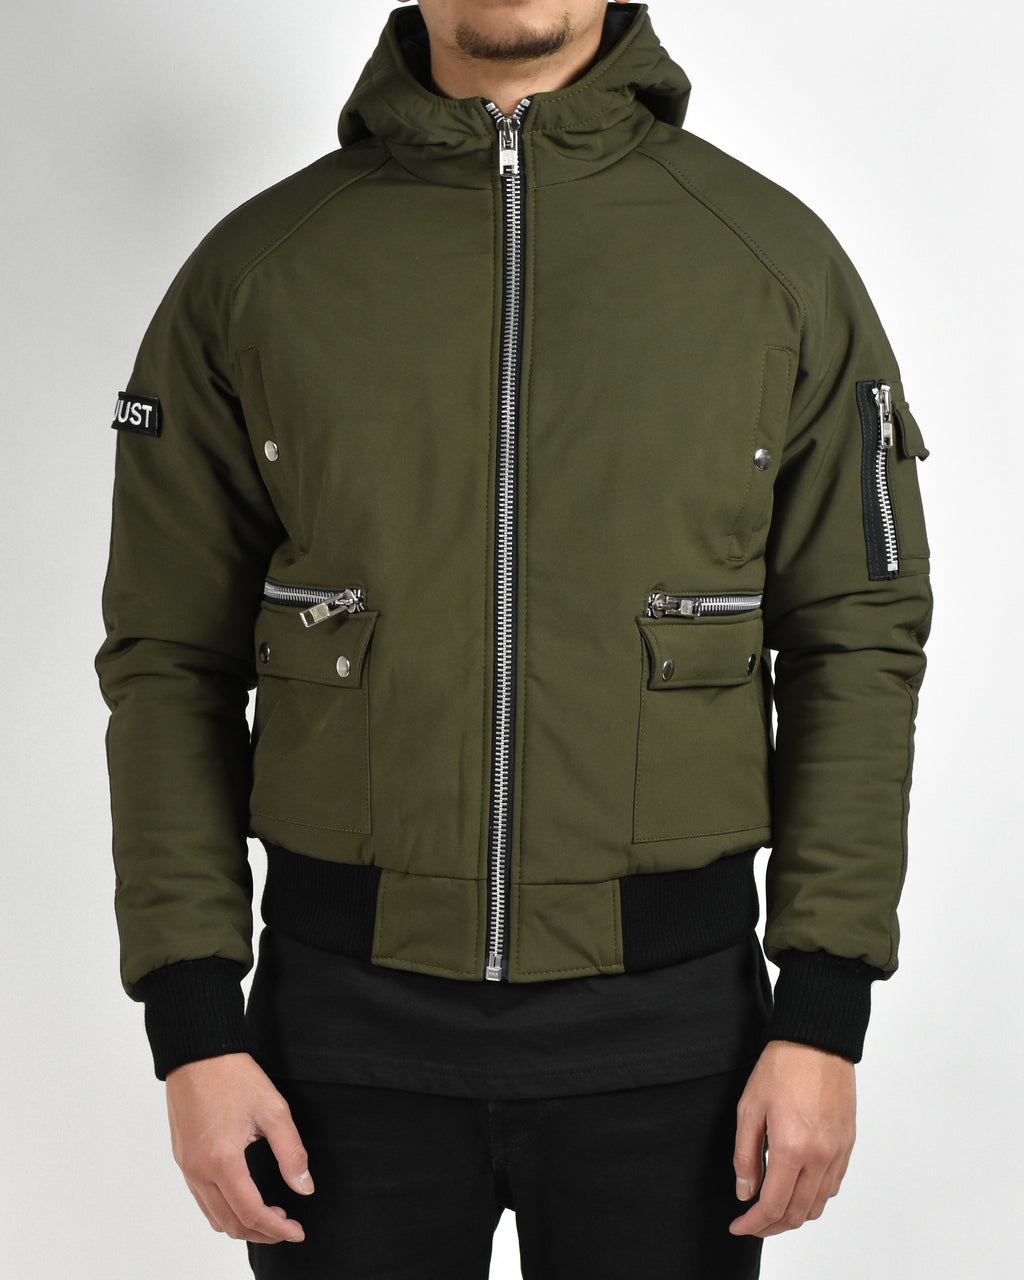 Army Green Hooded Bomber Jacket